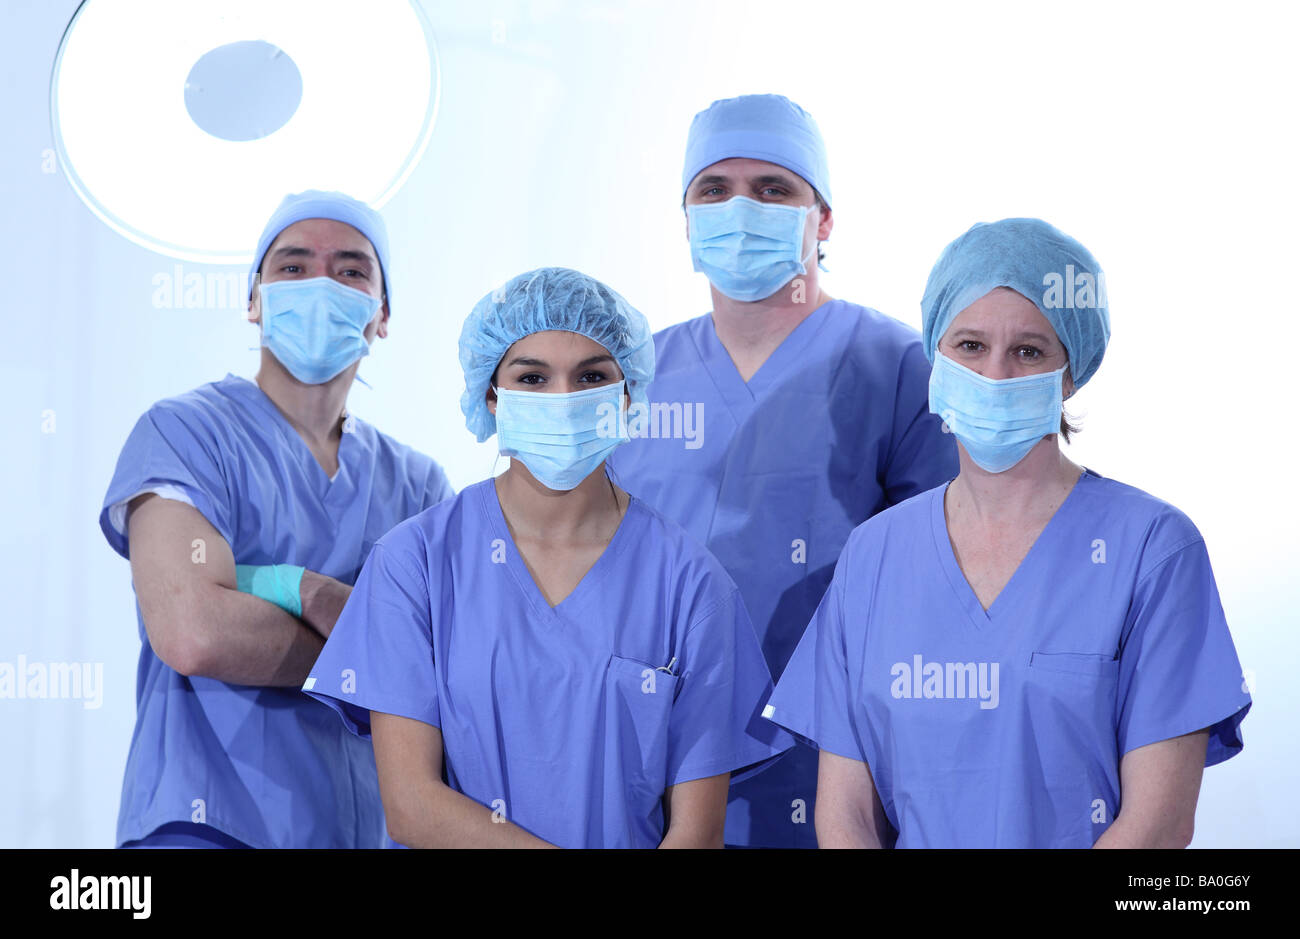 Group of surgeons in scrubs - Stock Image